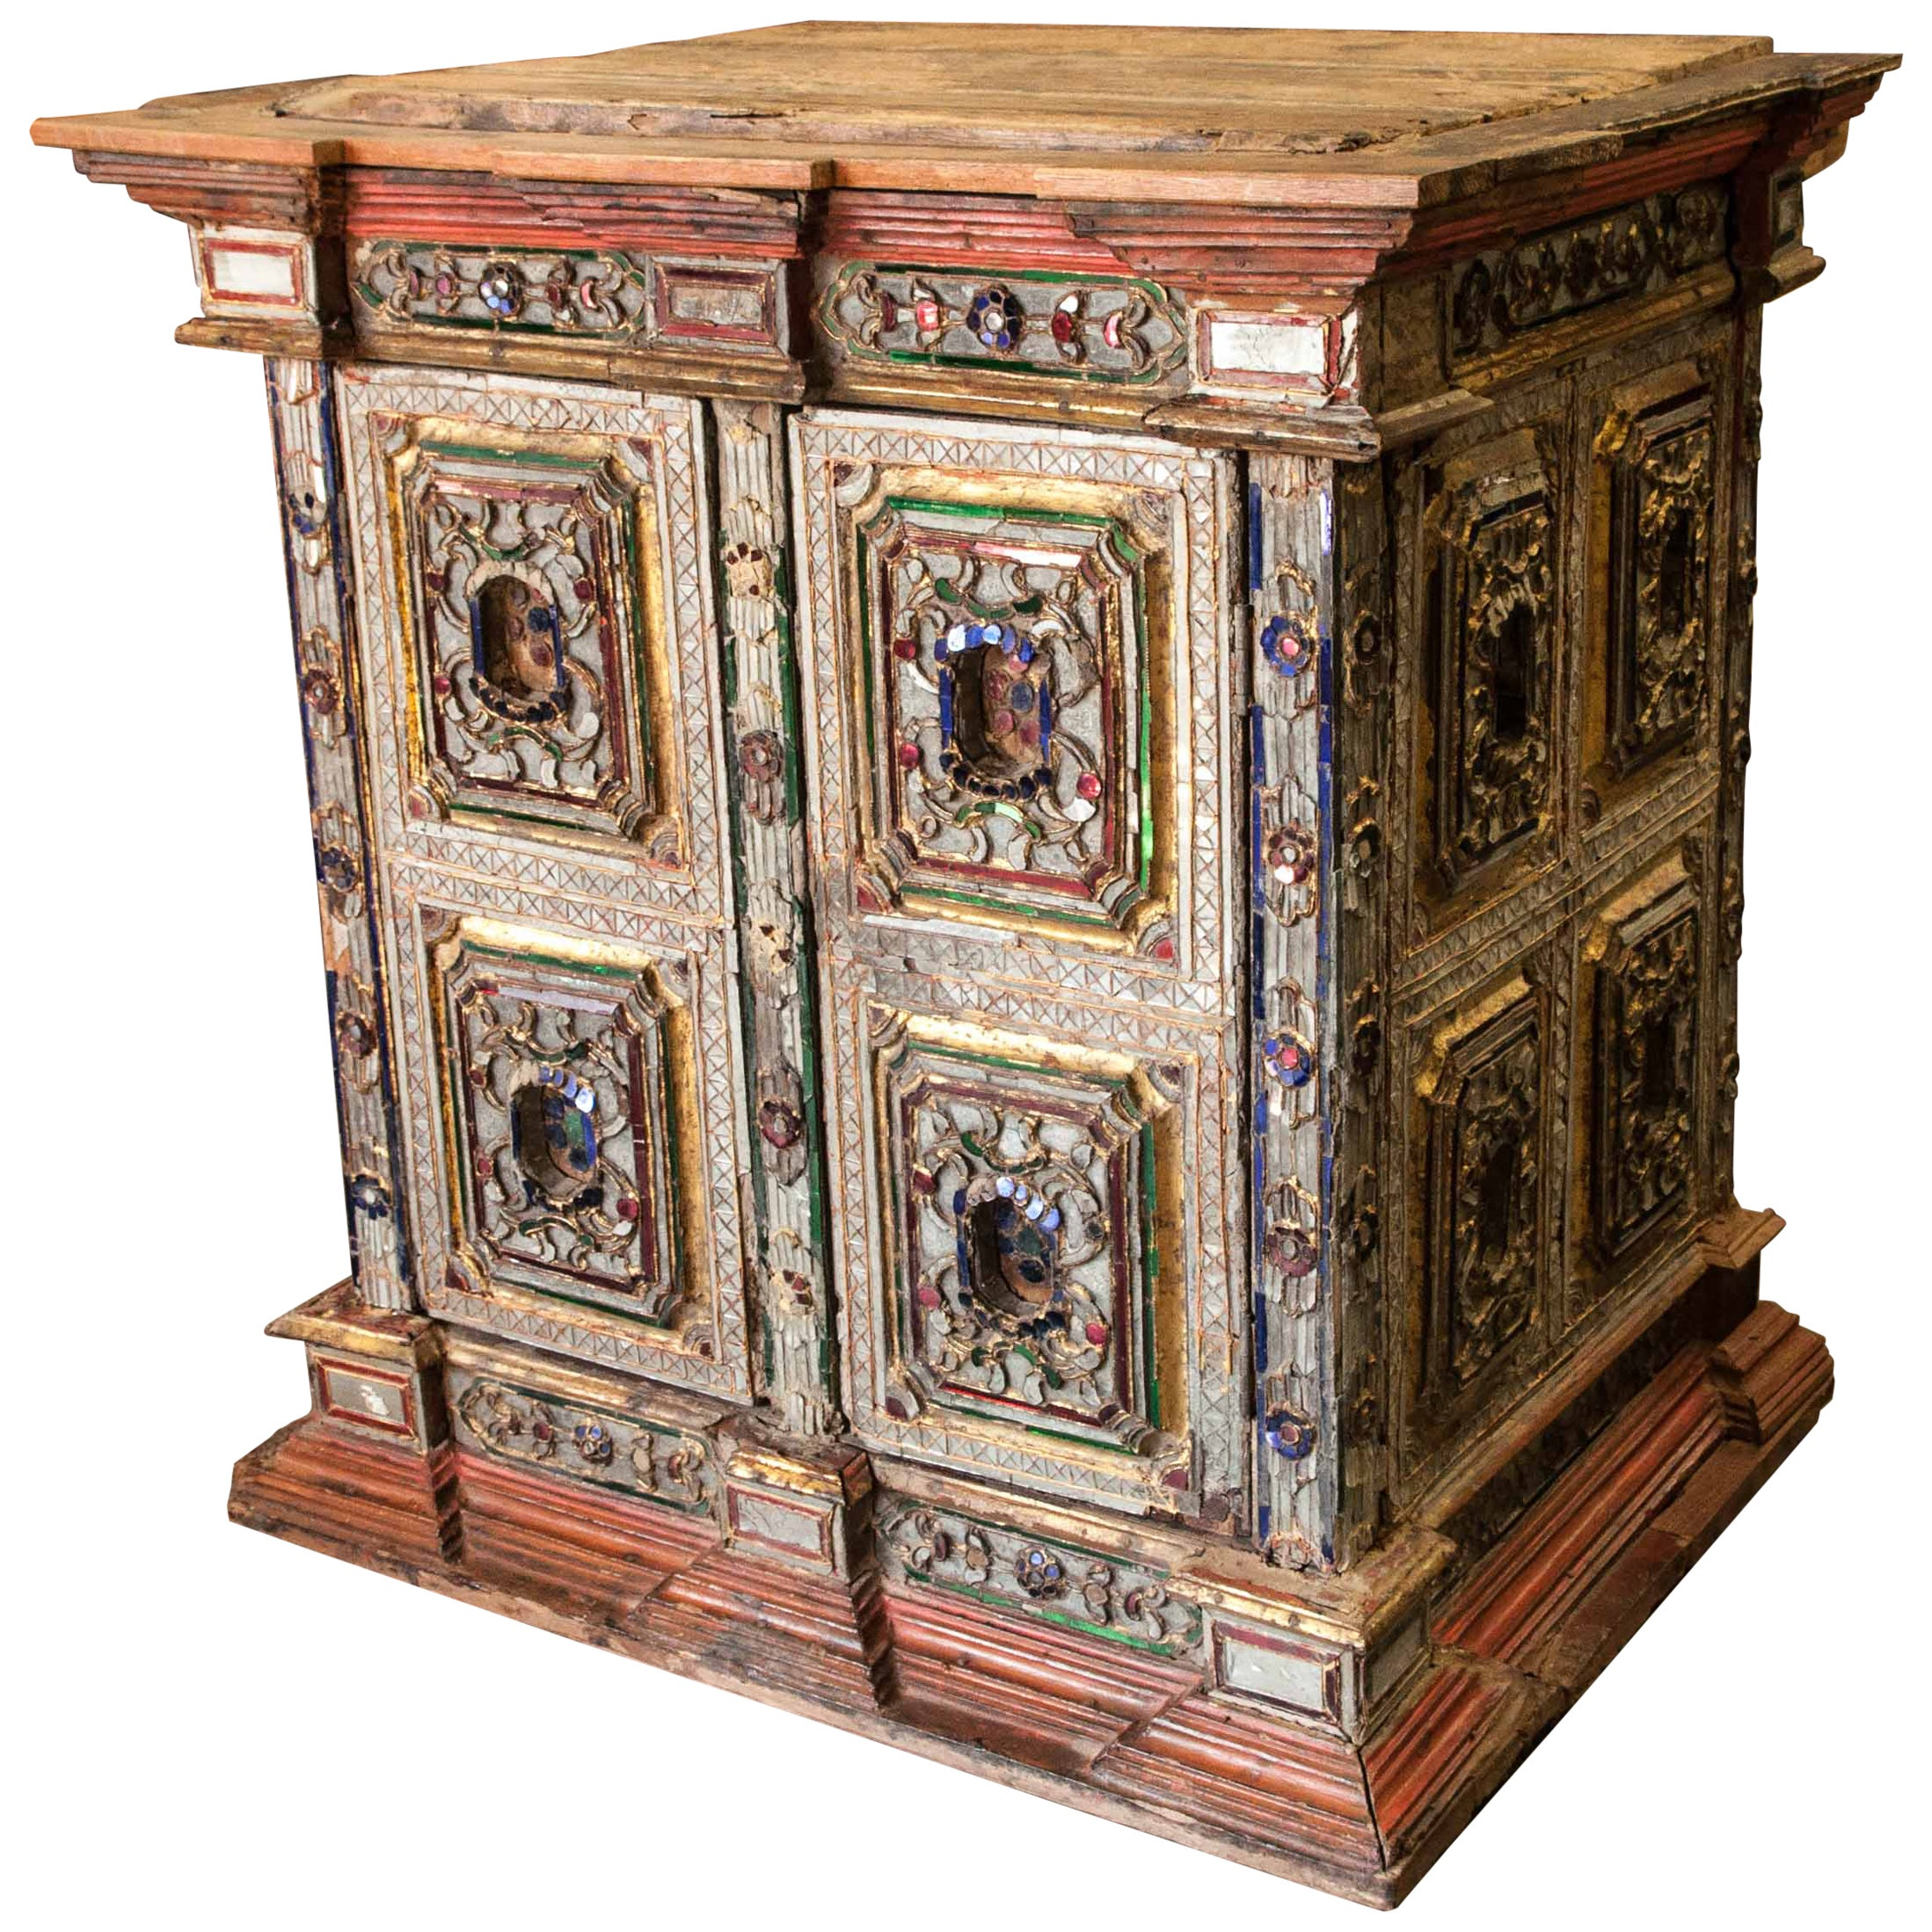 Buddhist Teak Scripture Cabinet from Burma with Inlay Glass, Early 20th Century